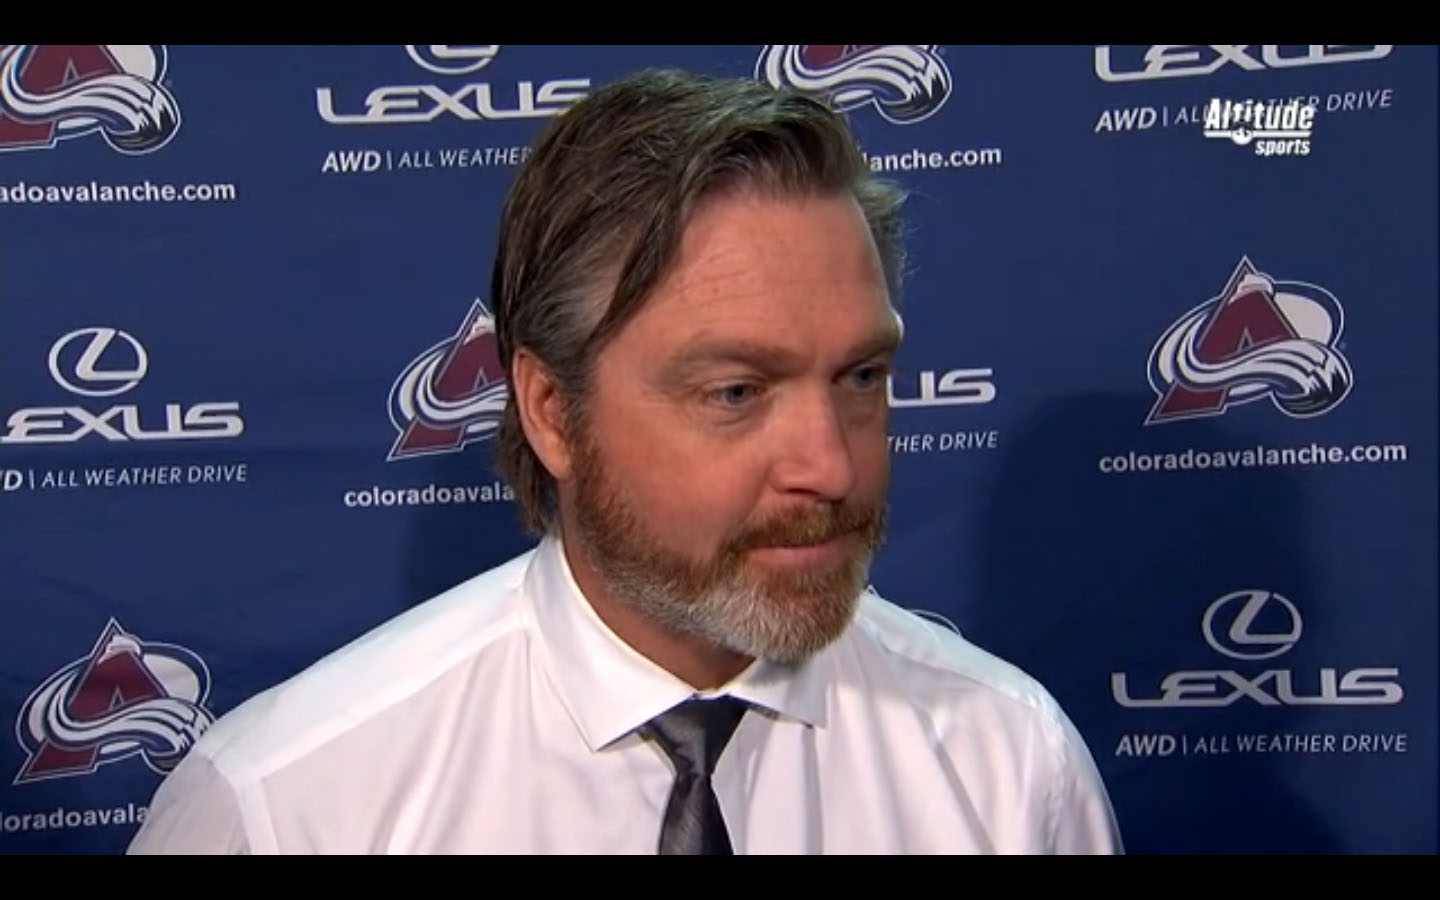 Patrick-Roy-Interview-Avs-vs-Kings-10-18-15.jpg